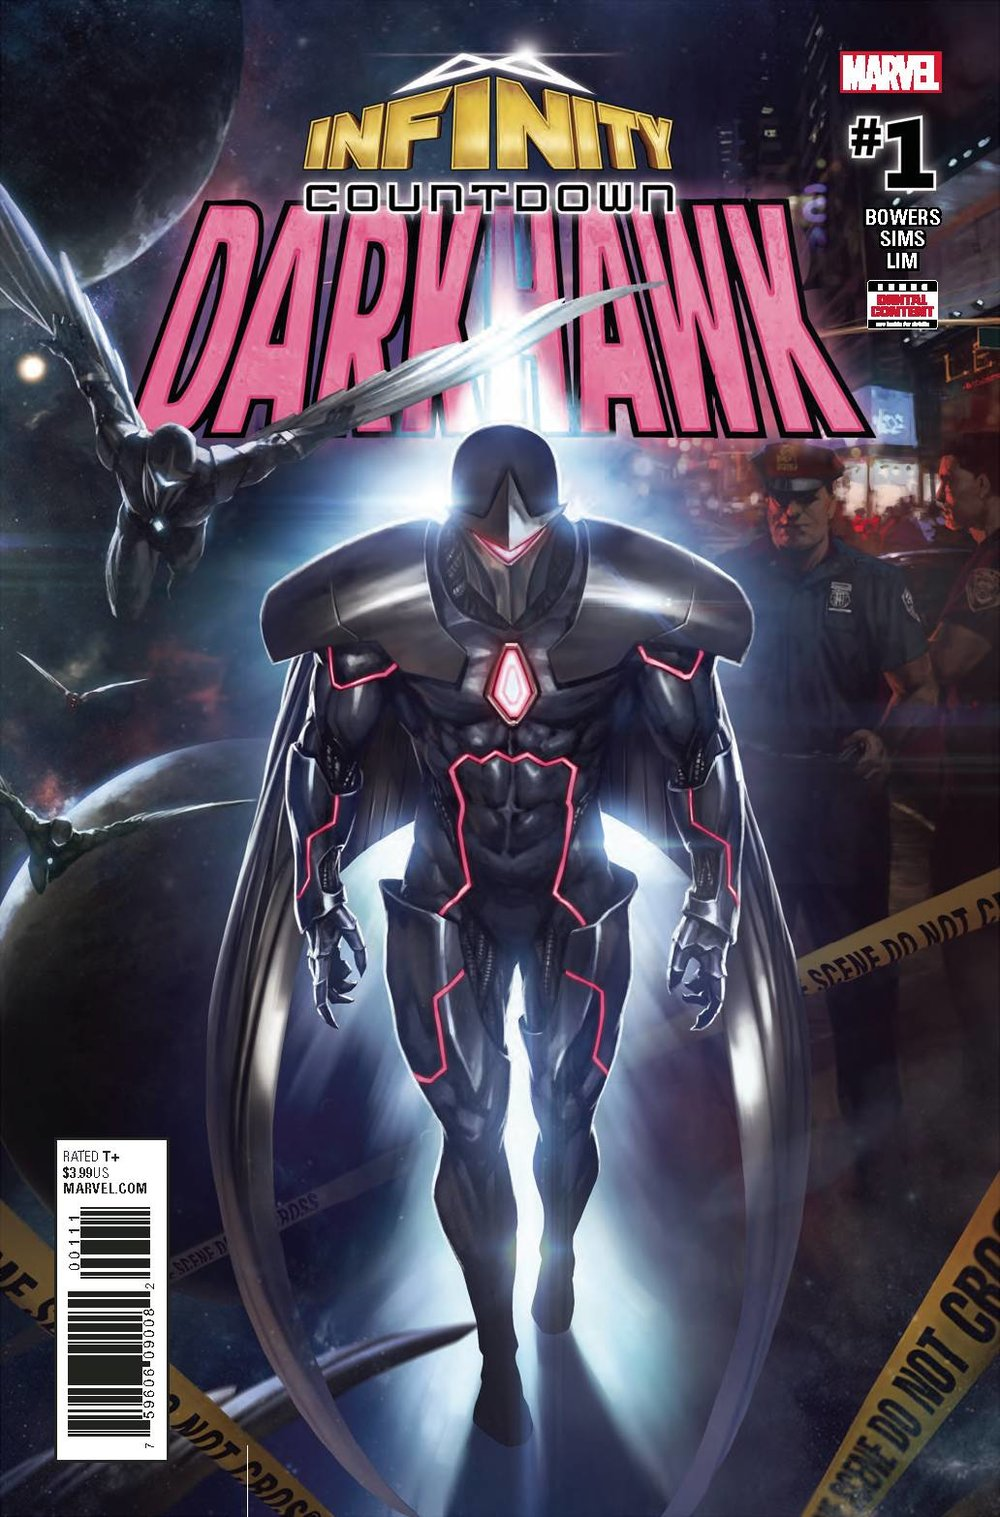 INFINITY COUNTDOWN DARKHAWK 1 of 4.jpg